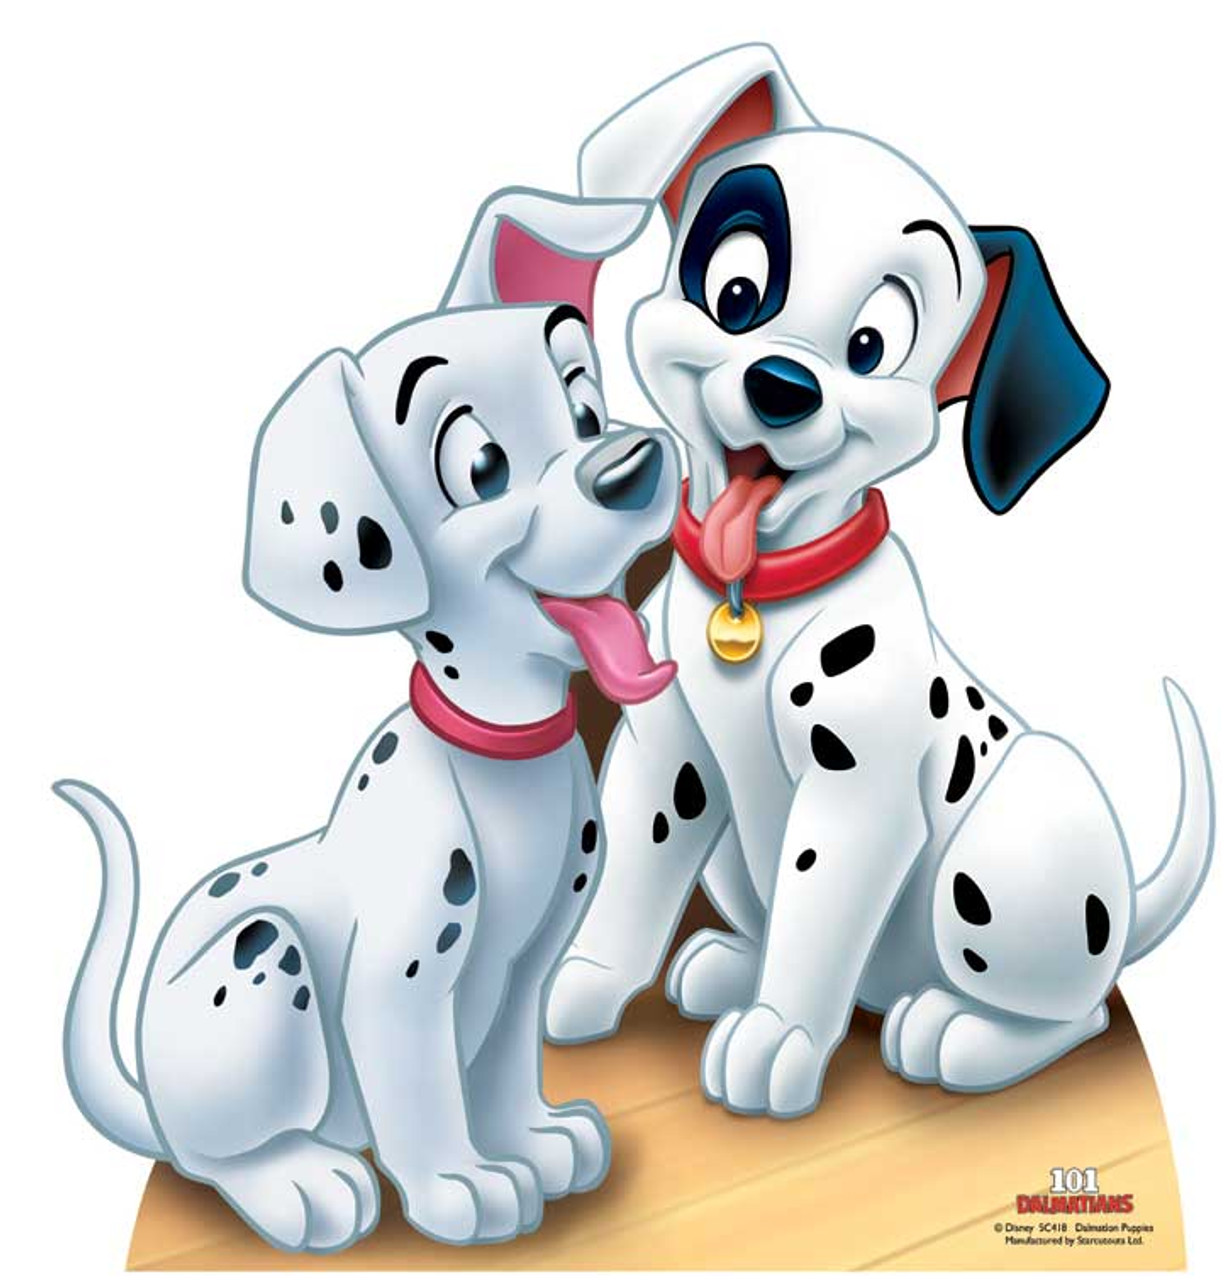 It's just an image of Influential 101 Dalmatians Images